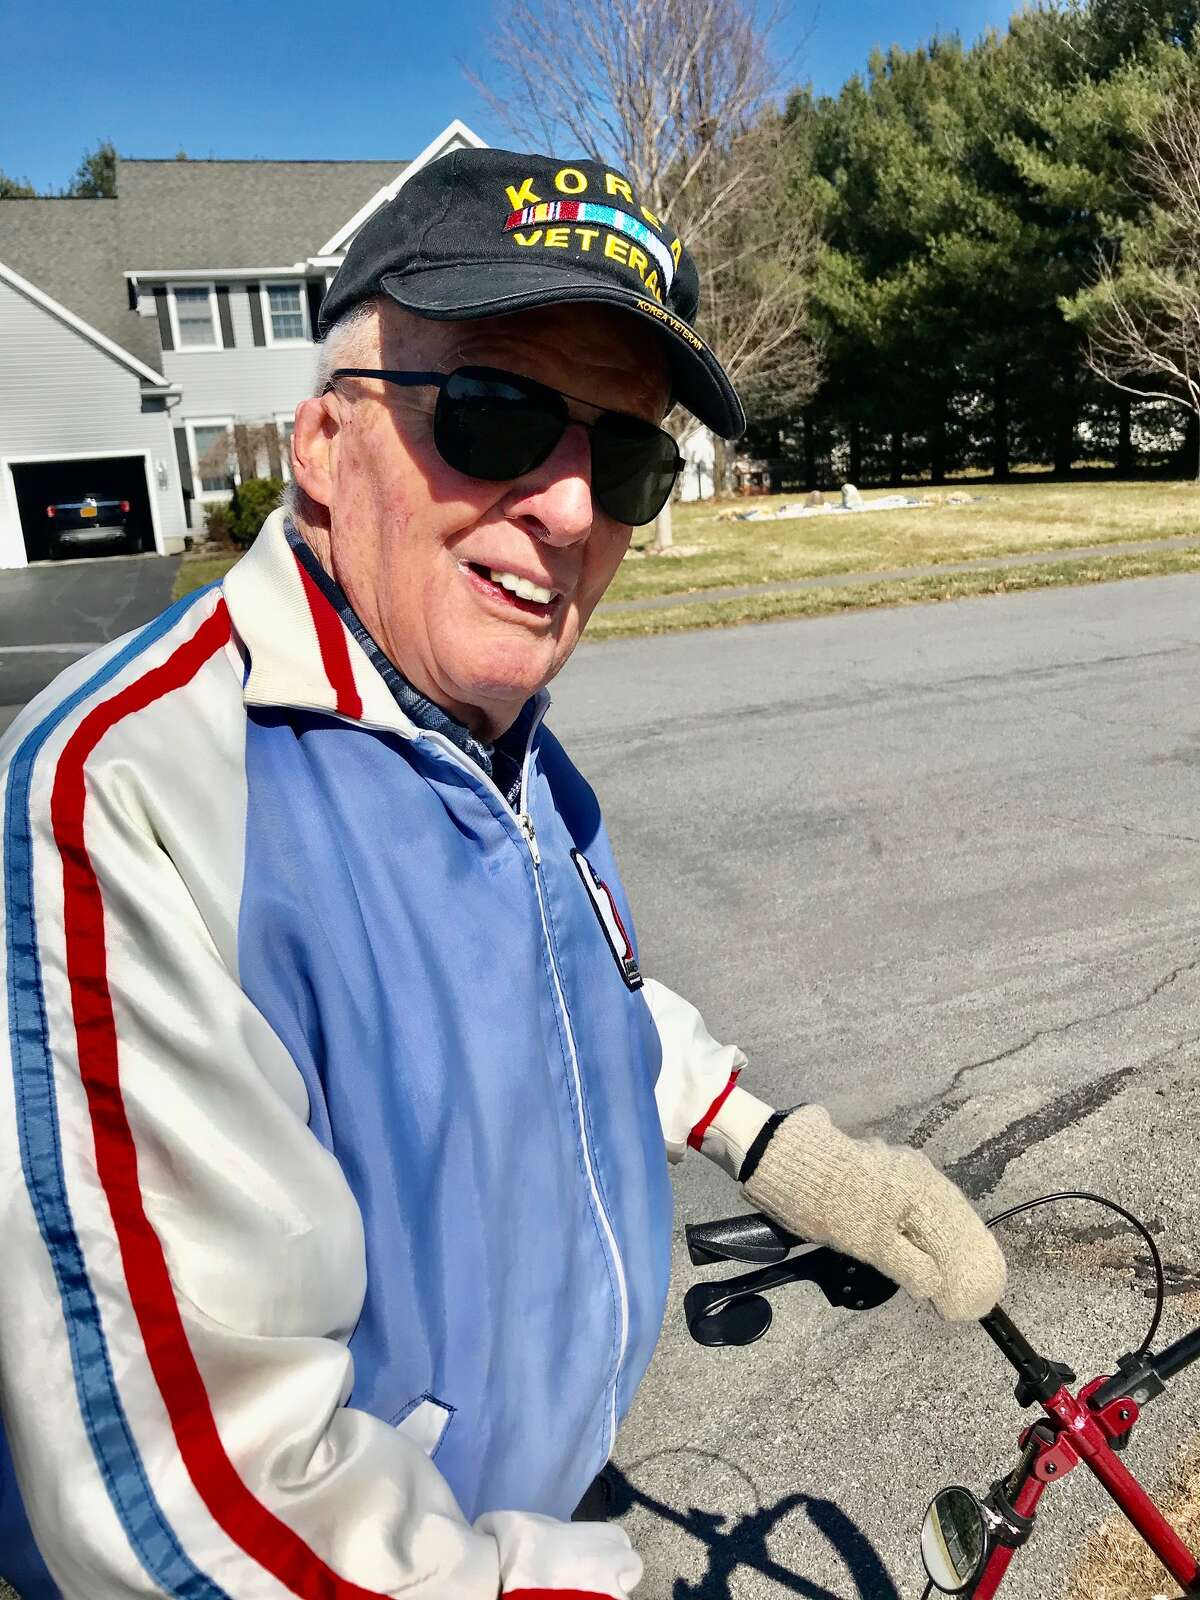 Fred Malone survived prostate cancer, a broken neck, traumatic brain injury, Parkinson's disease and a broken hip. He feels his daily walk is keeping him alive.